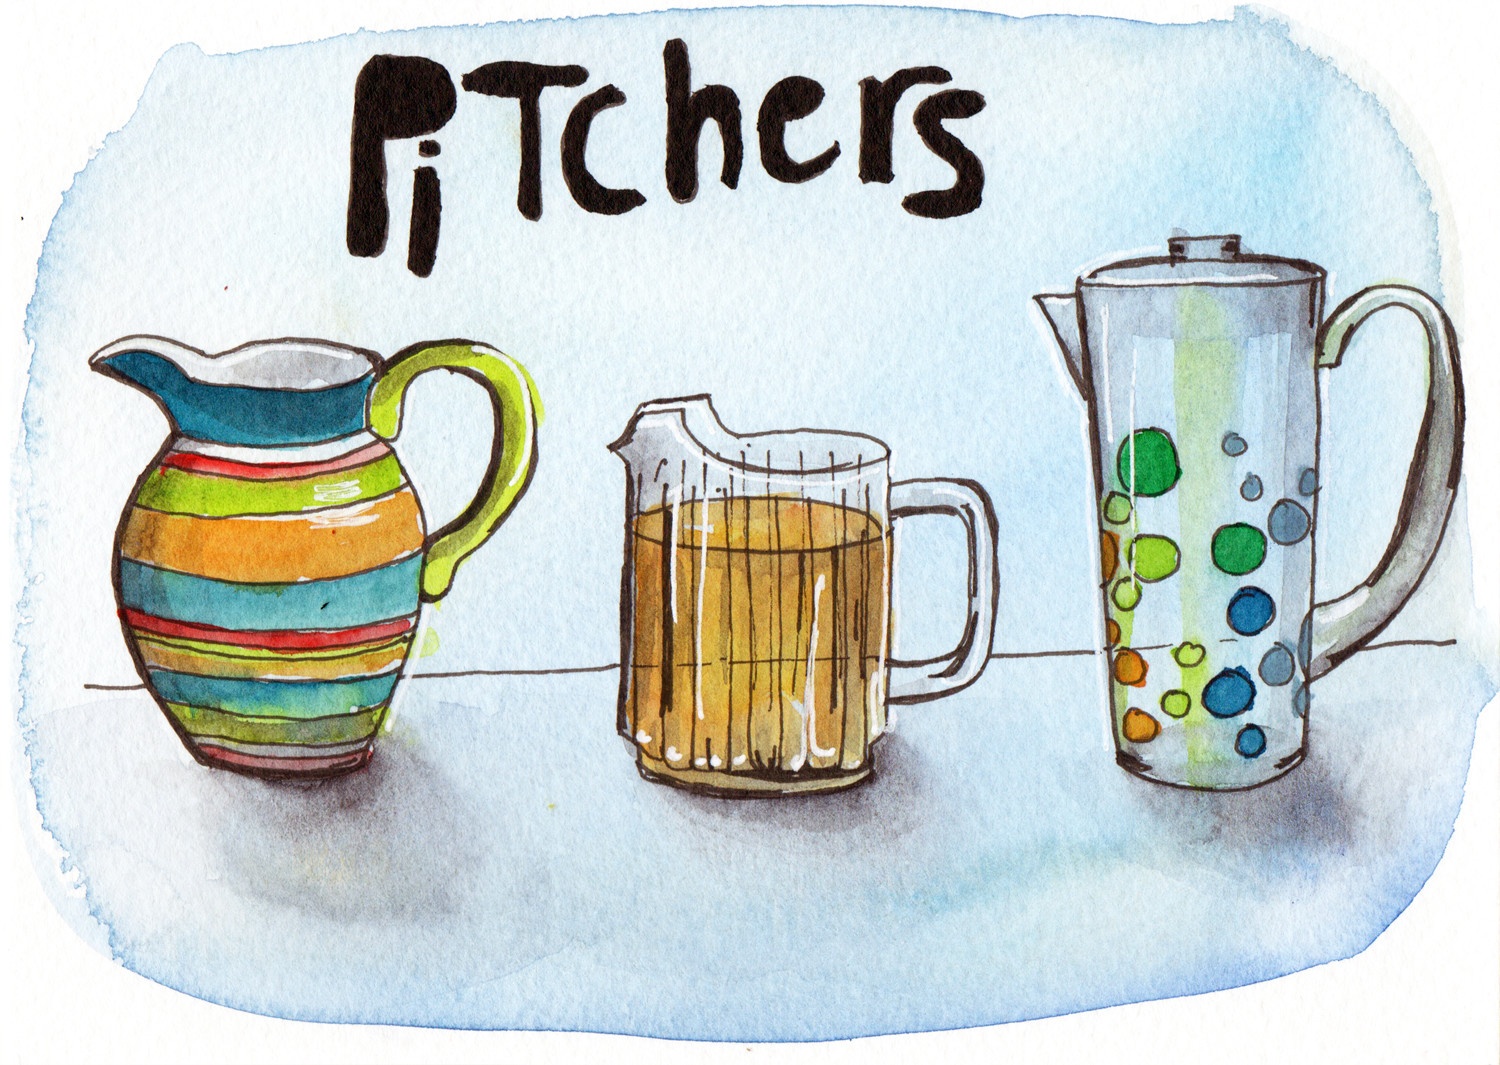 Daily drawings - Pitchers in pen and watercolour by Sophie Peanut